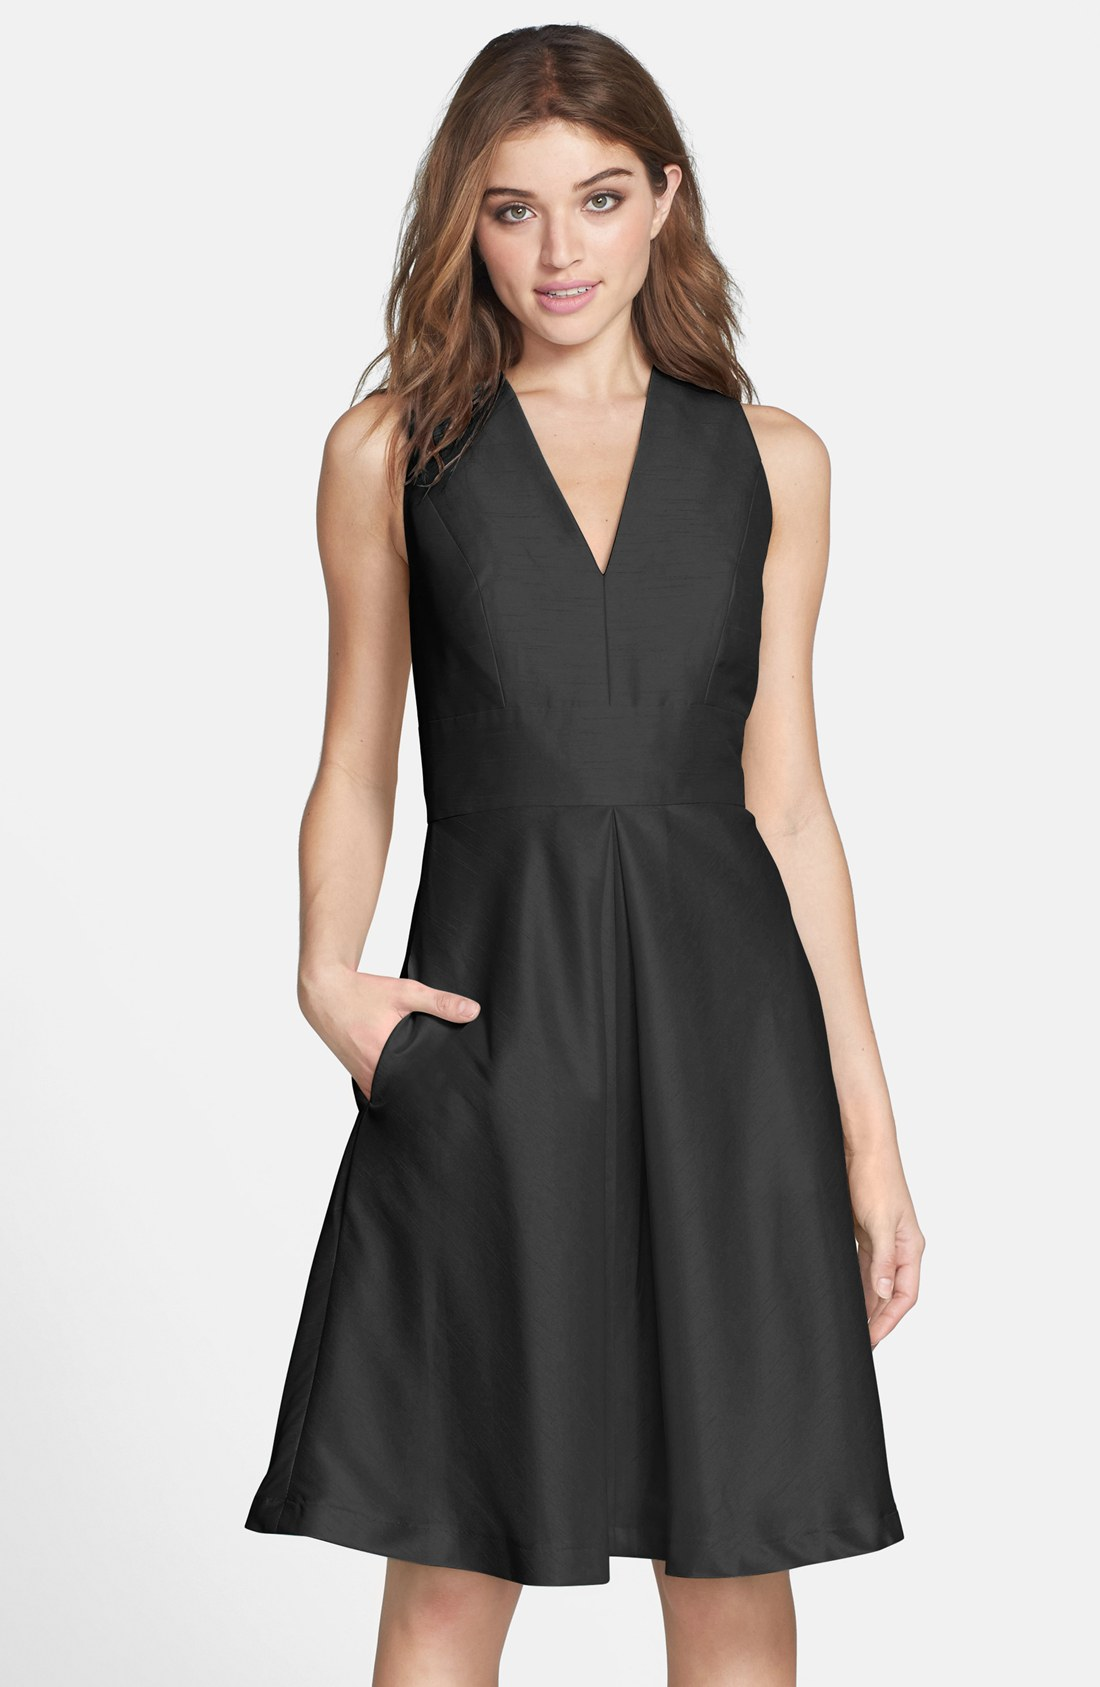 can you wear black to a wedding black dresses for weddings V Neck Knee Length Cocktail Dress